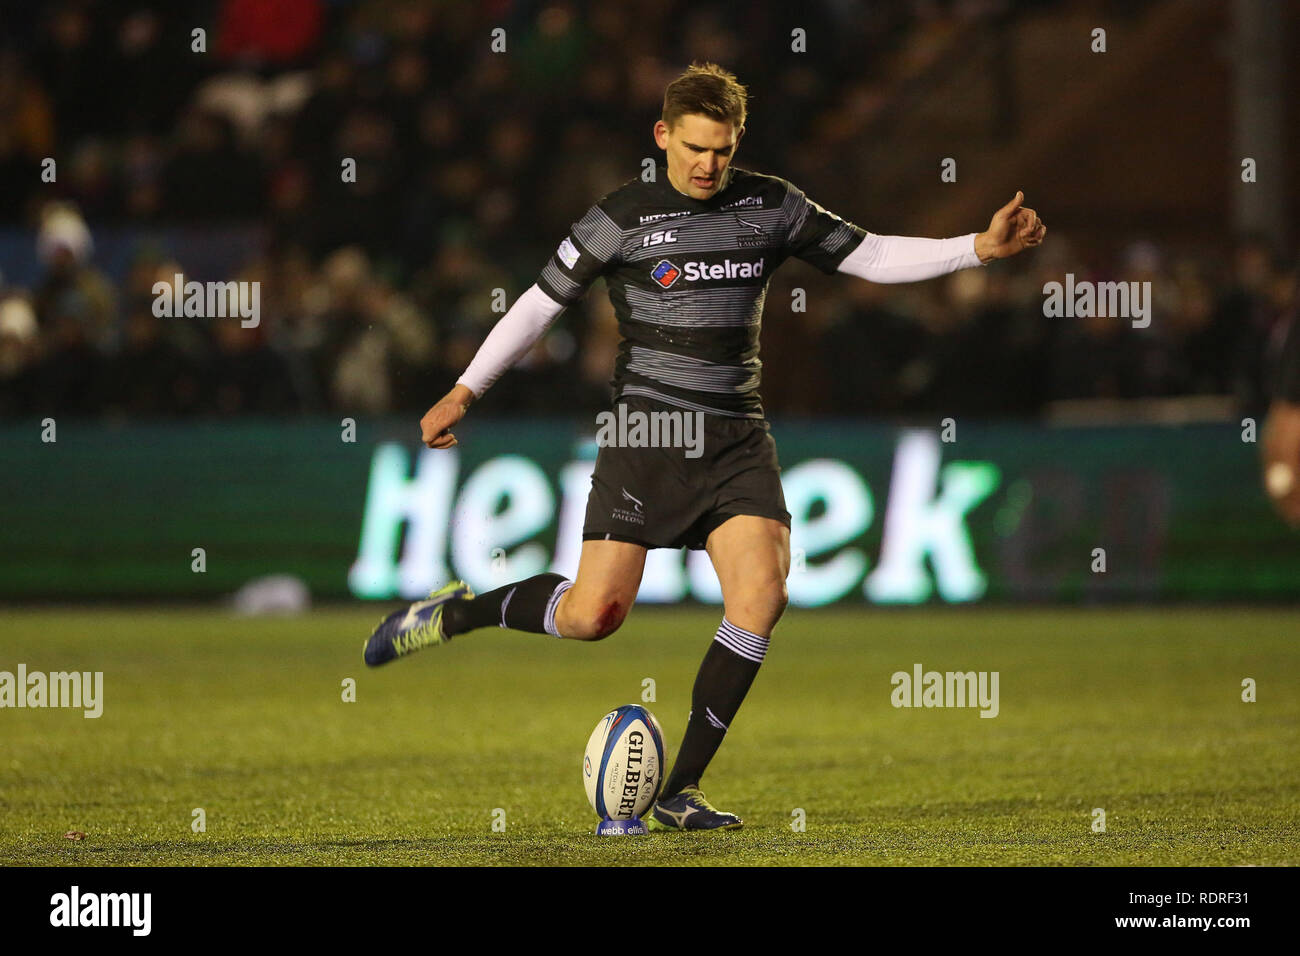 Newcastle Upon Tyne, UK. 18th Jan 2019.  Newcastle's Toby Flood in action during the European Champions Cup match between Newcastle Falcons and Rugby Club Toulonnais at Kingston Park, Newcastle on Friday 18th January 2019. (Photo Credit: MI News & Sport /Alamy Live News - Stock Image